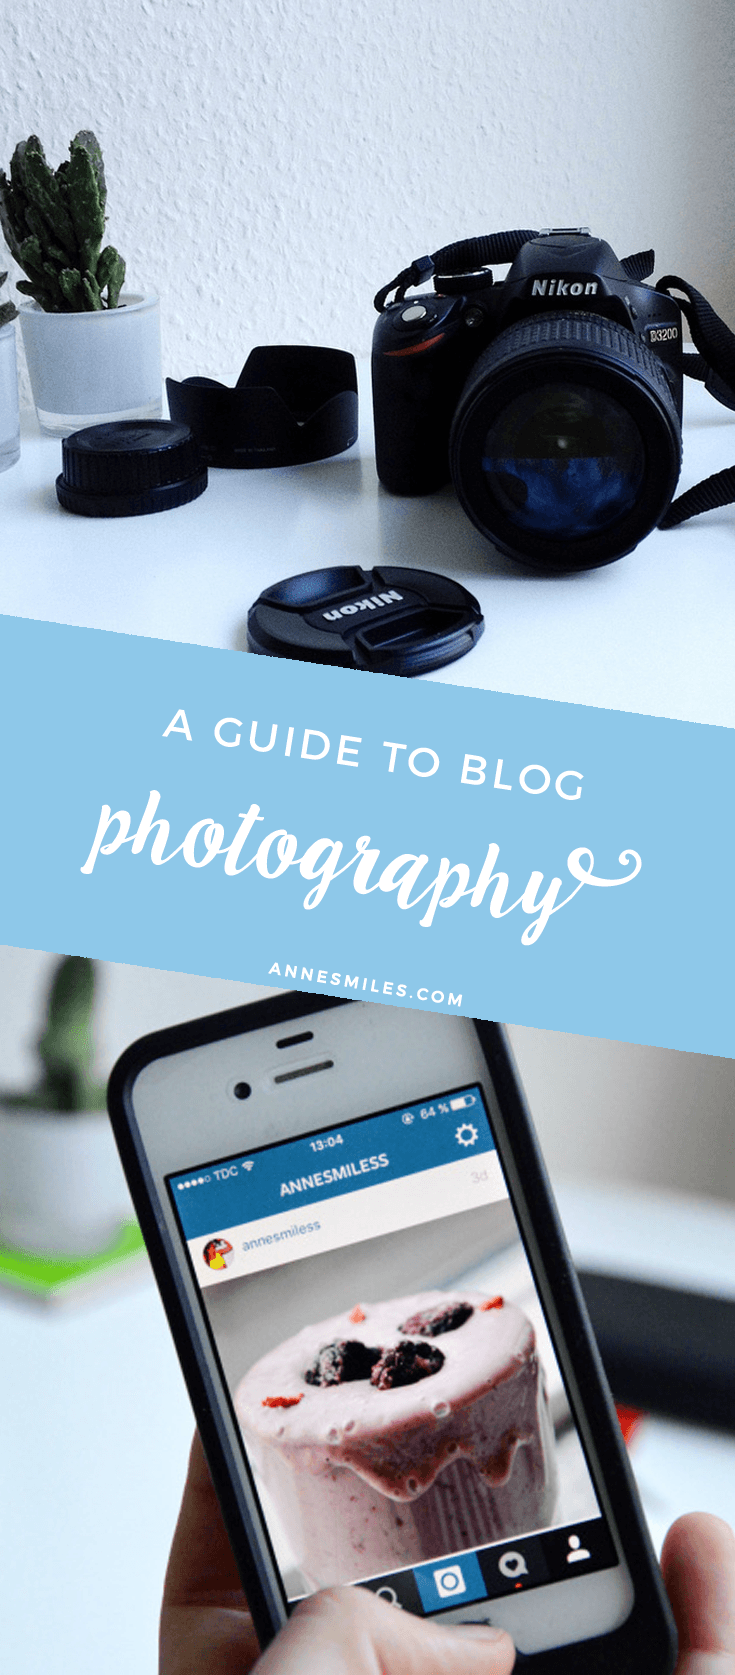 Blog Photography - How to take blogging pictures of yourself on your own without a remote #photography #blogging #blog